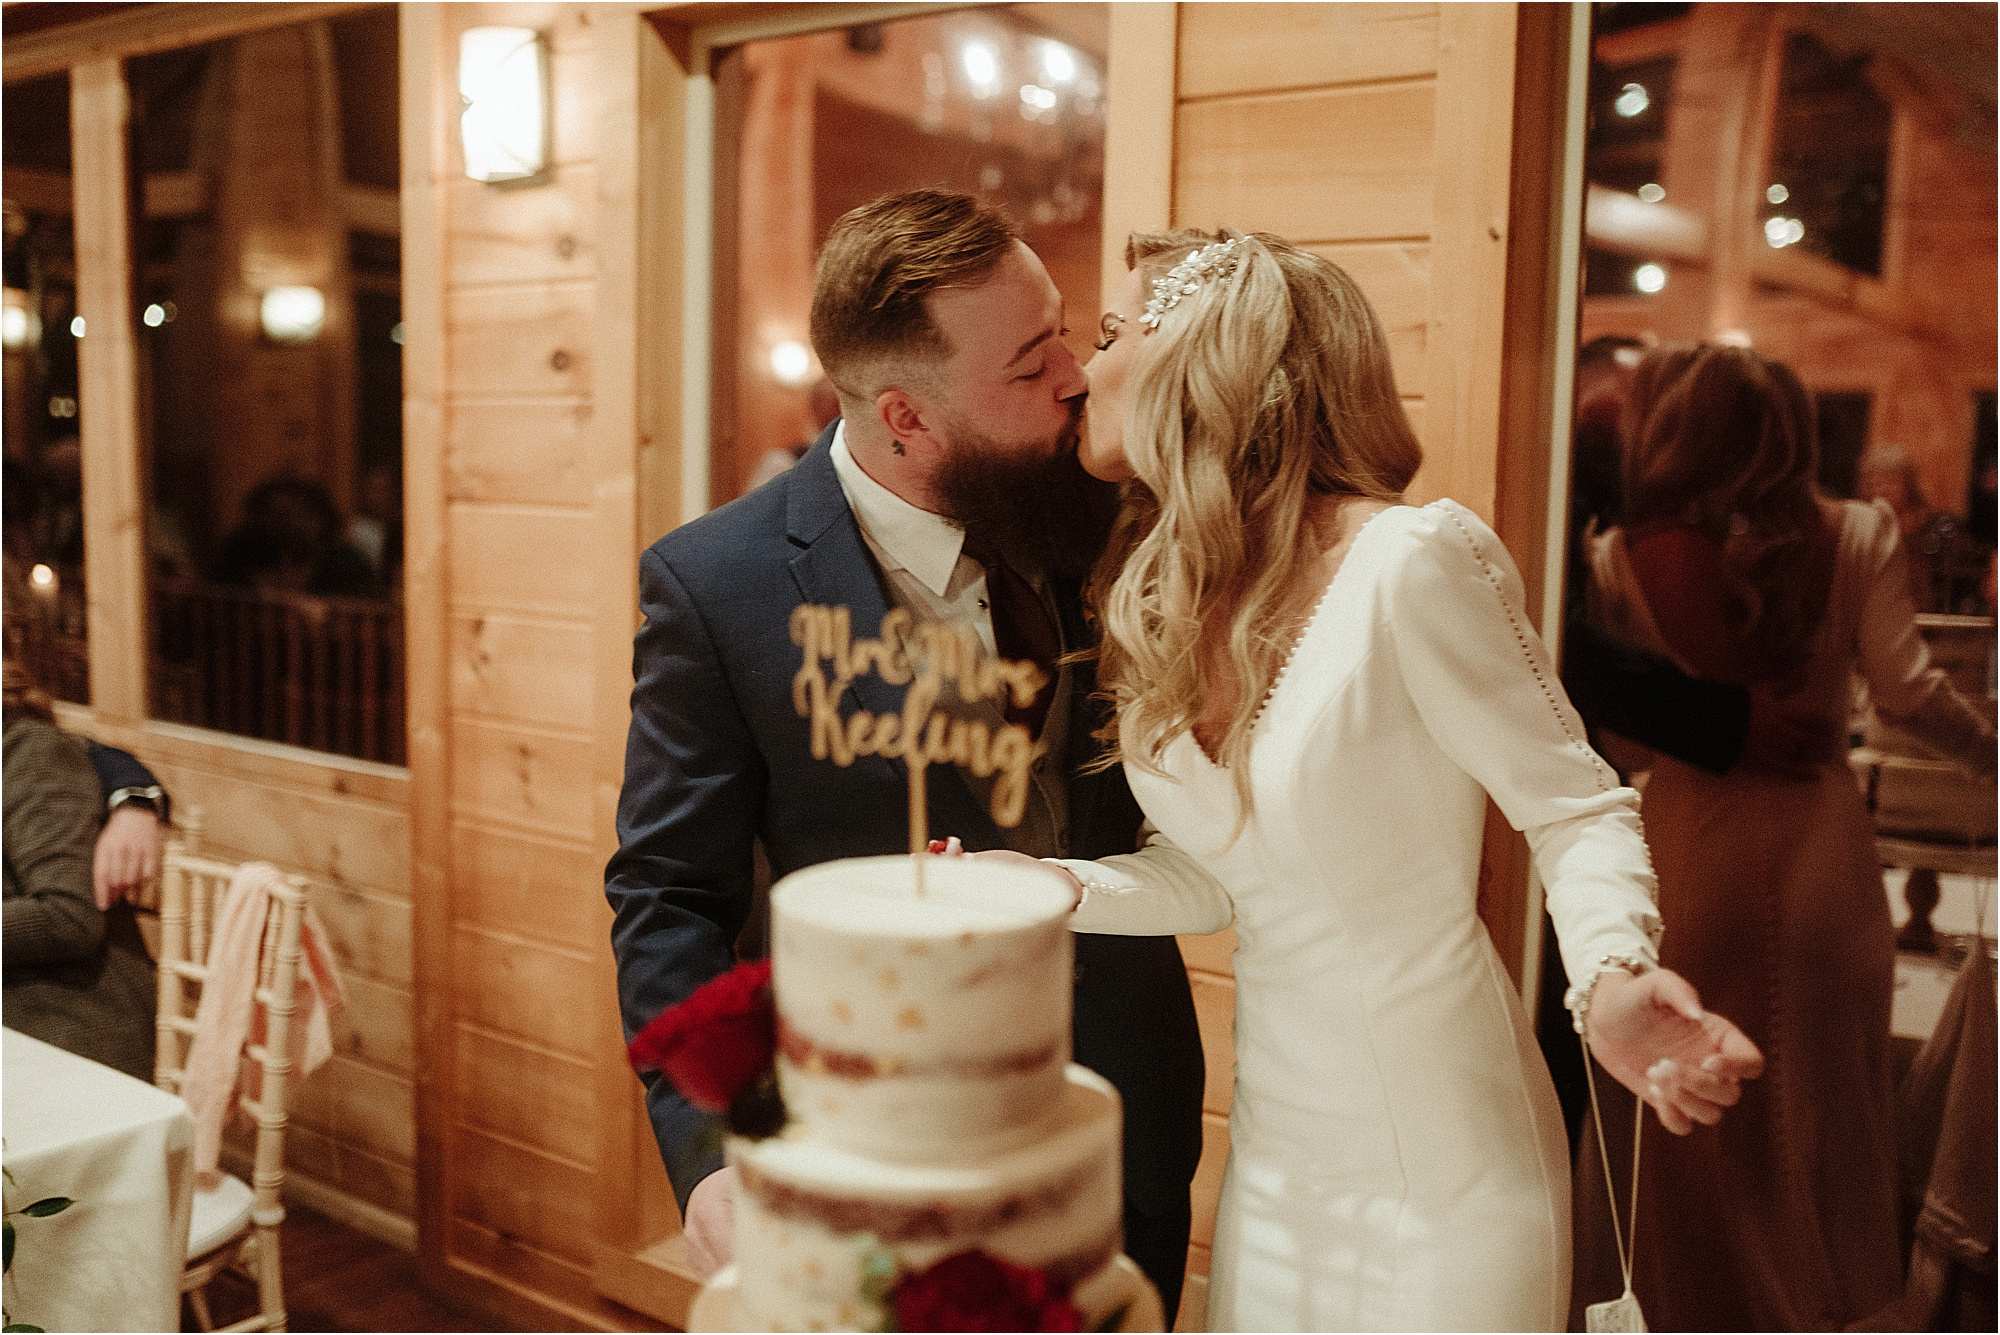 bride and groom kiss at cake cutting